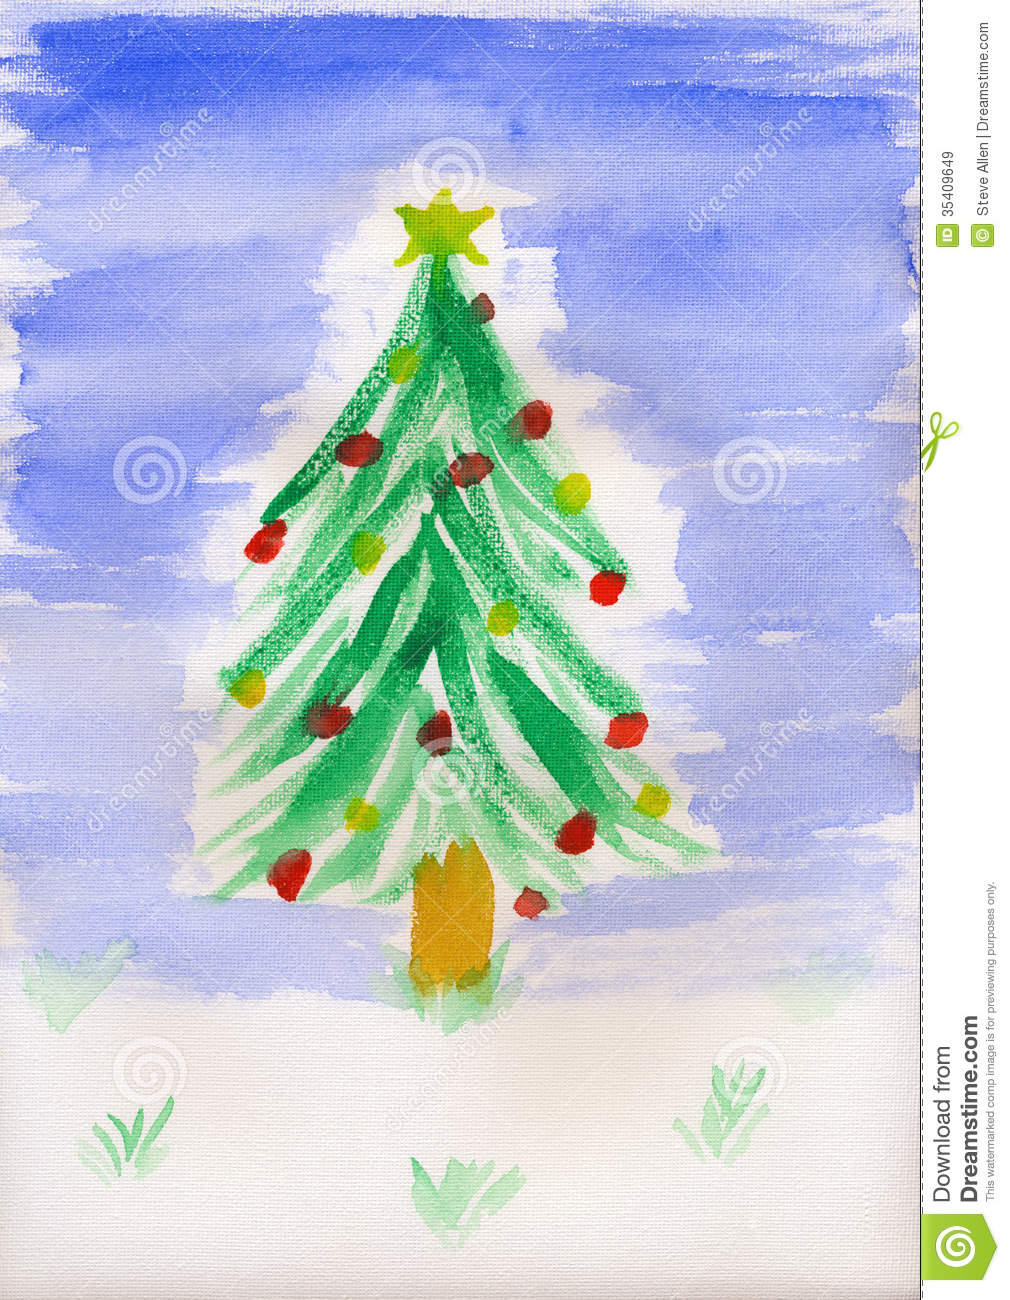 childrens painting christmas tree royalty free stock images